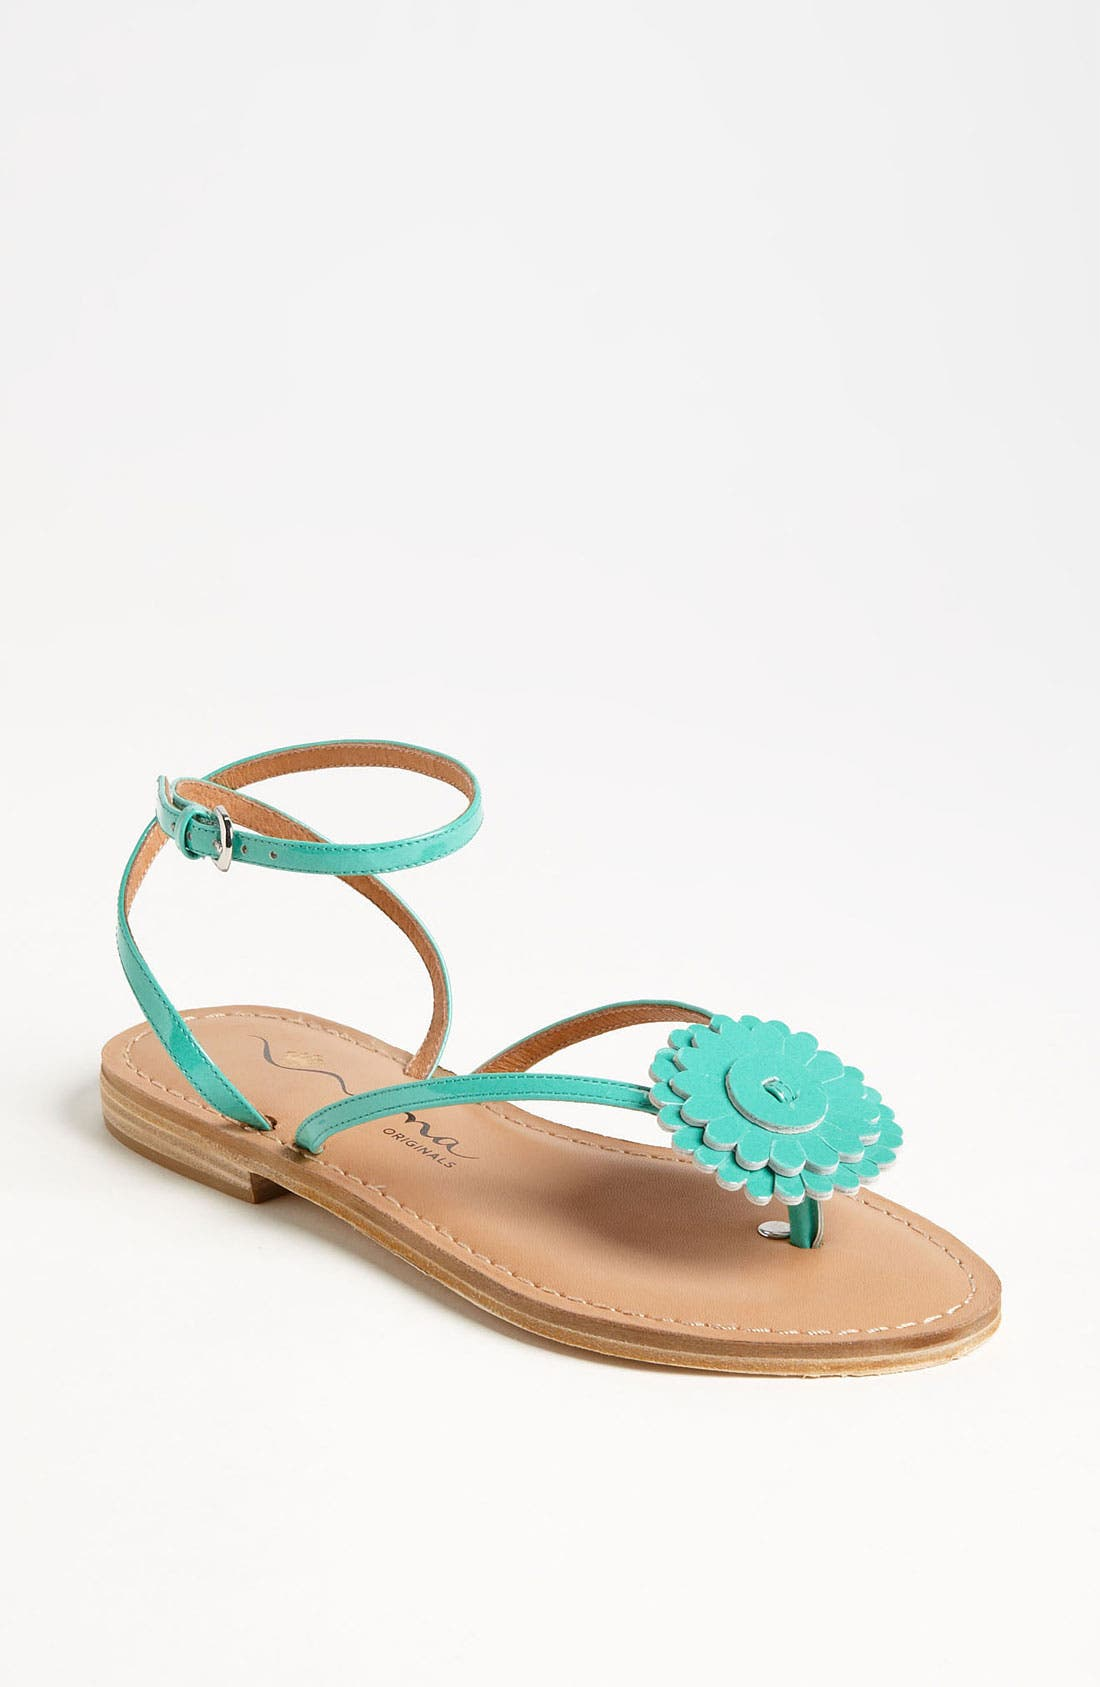 Main Image - Nina Originals 'Ultra' Sandal